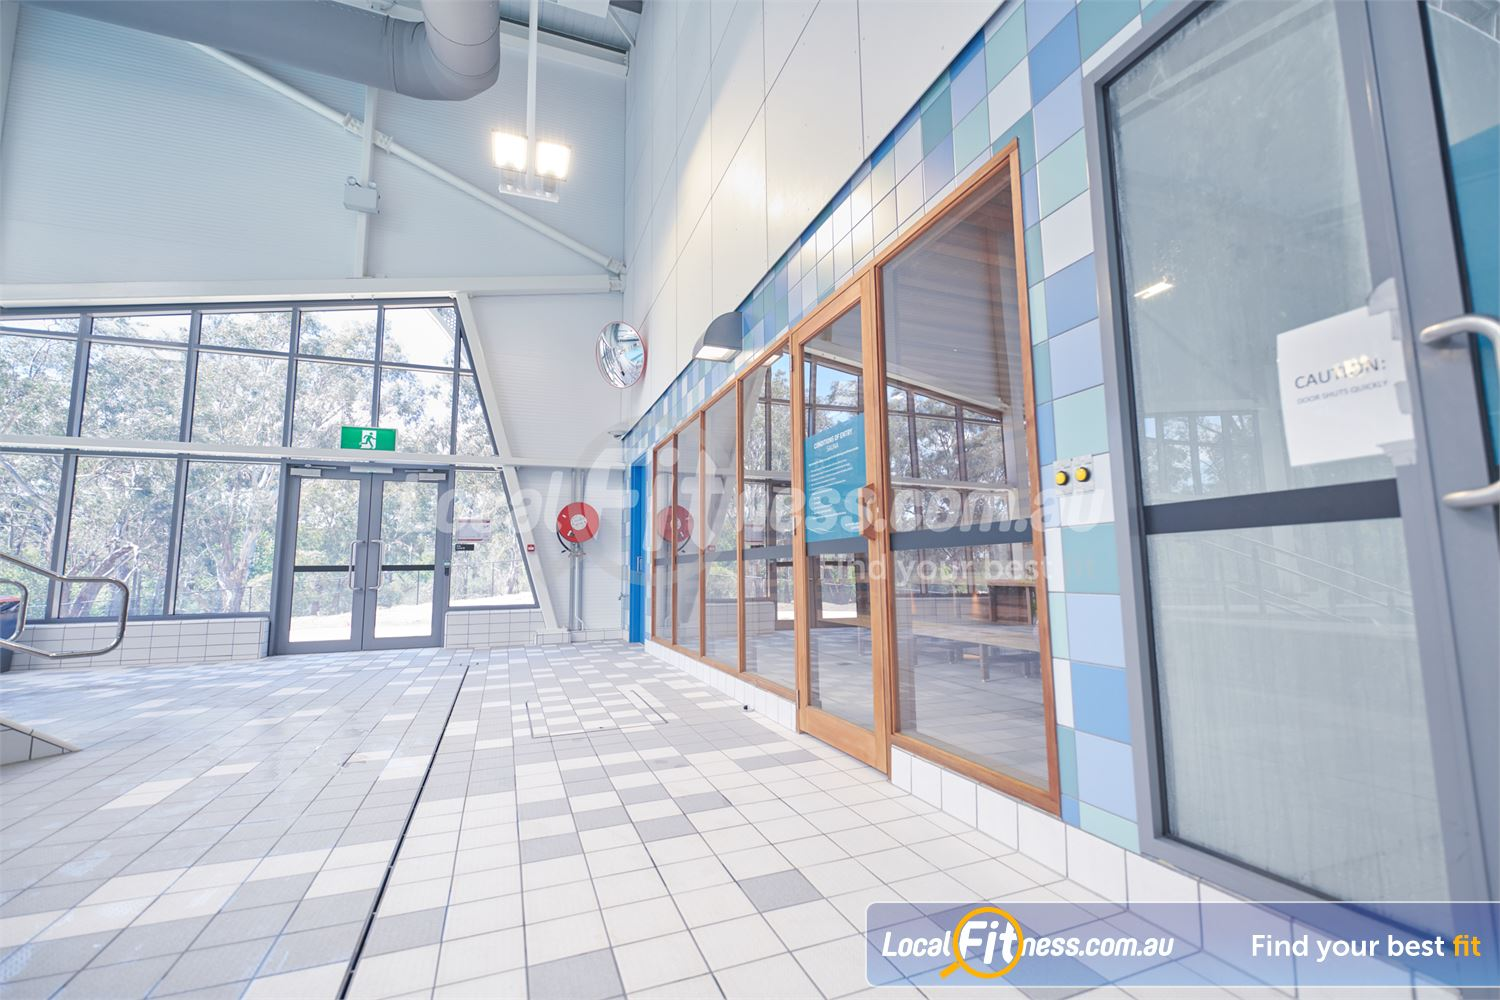 Eltham Leisure Centre Eltham steam room and sauna facilities in the new aquatic area.